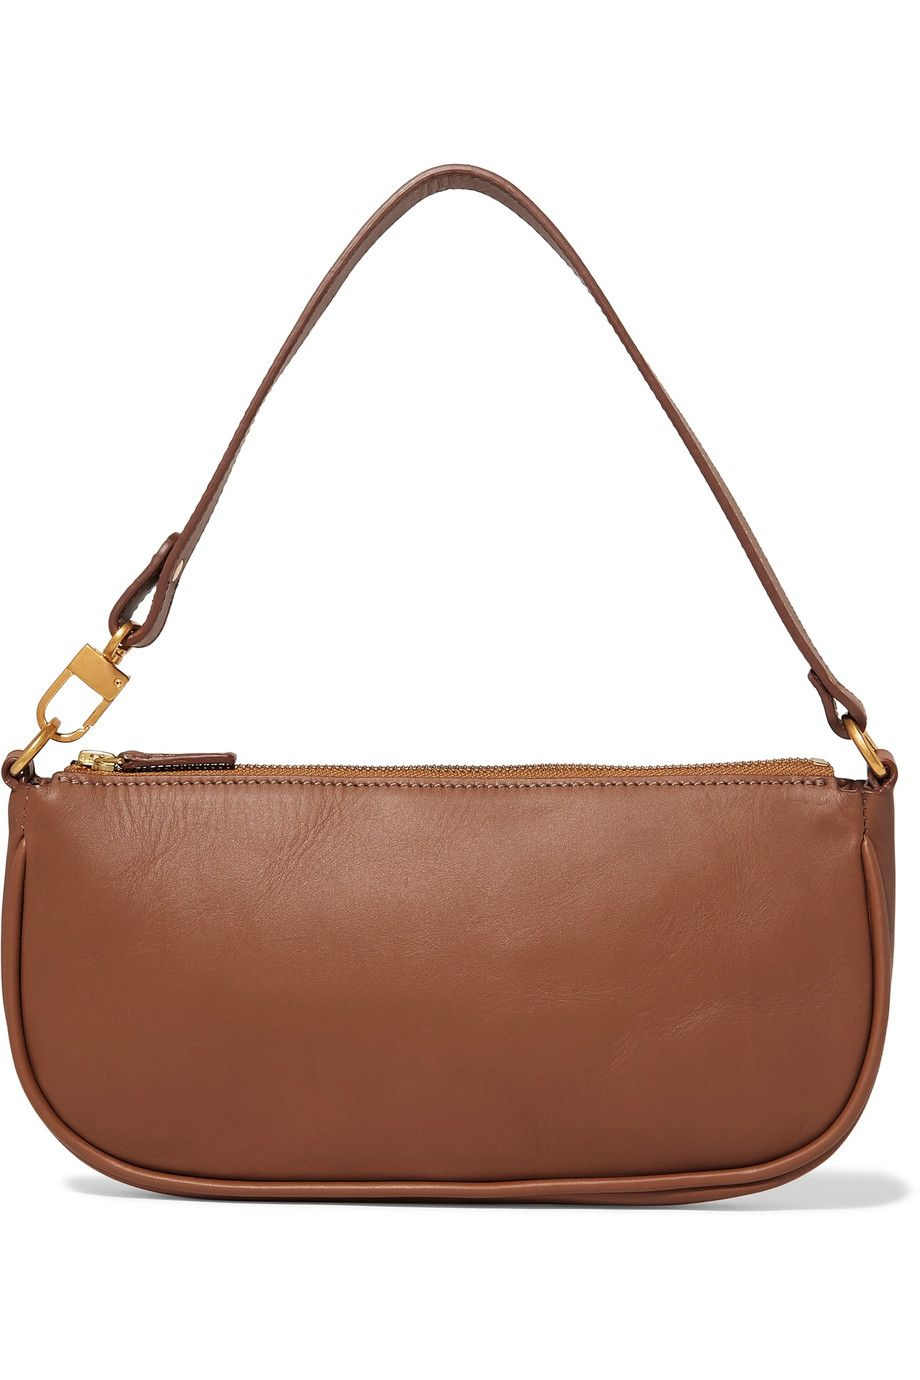 Super Trendy By Far Bags Are Up to 50% Off, And They're Selling Out Like Hotcakes